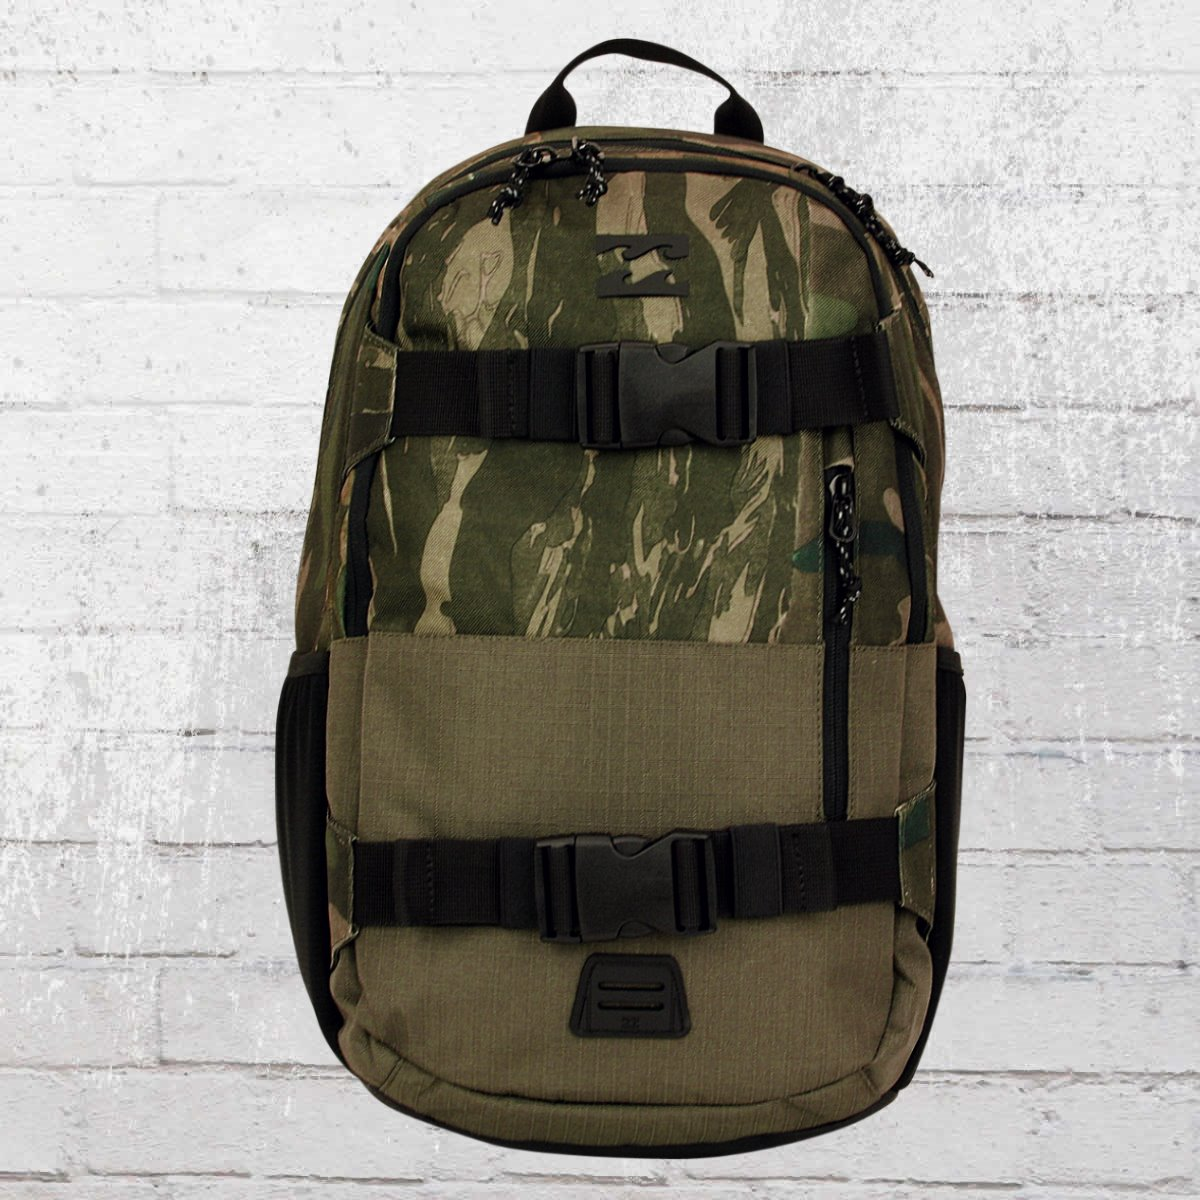 548228e1354f4 Have you seen  Billabong Rucksack Hermosa Backpack with Laptop ...